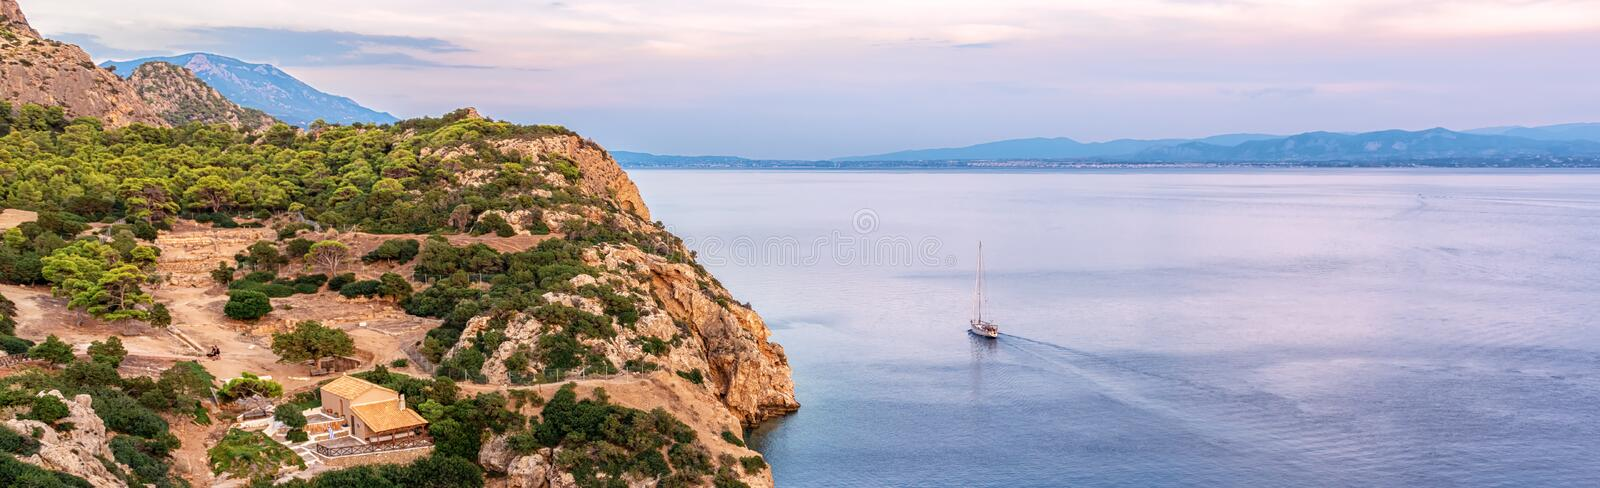 The small cove of the Corinthian gulf near Heraion of Perachora, Greece.  stock photography